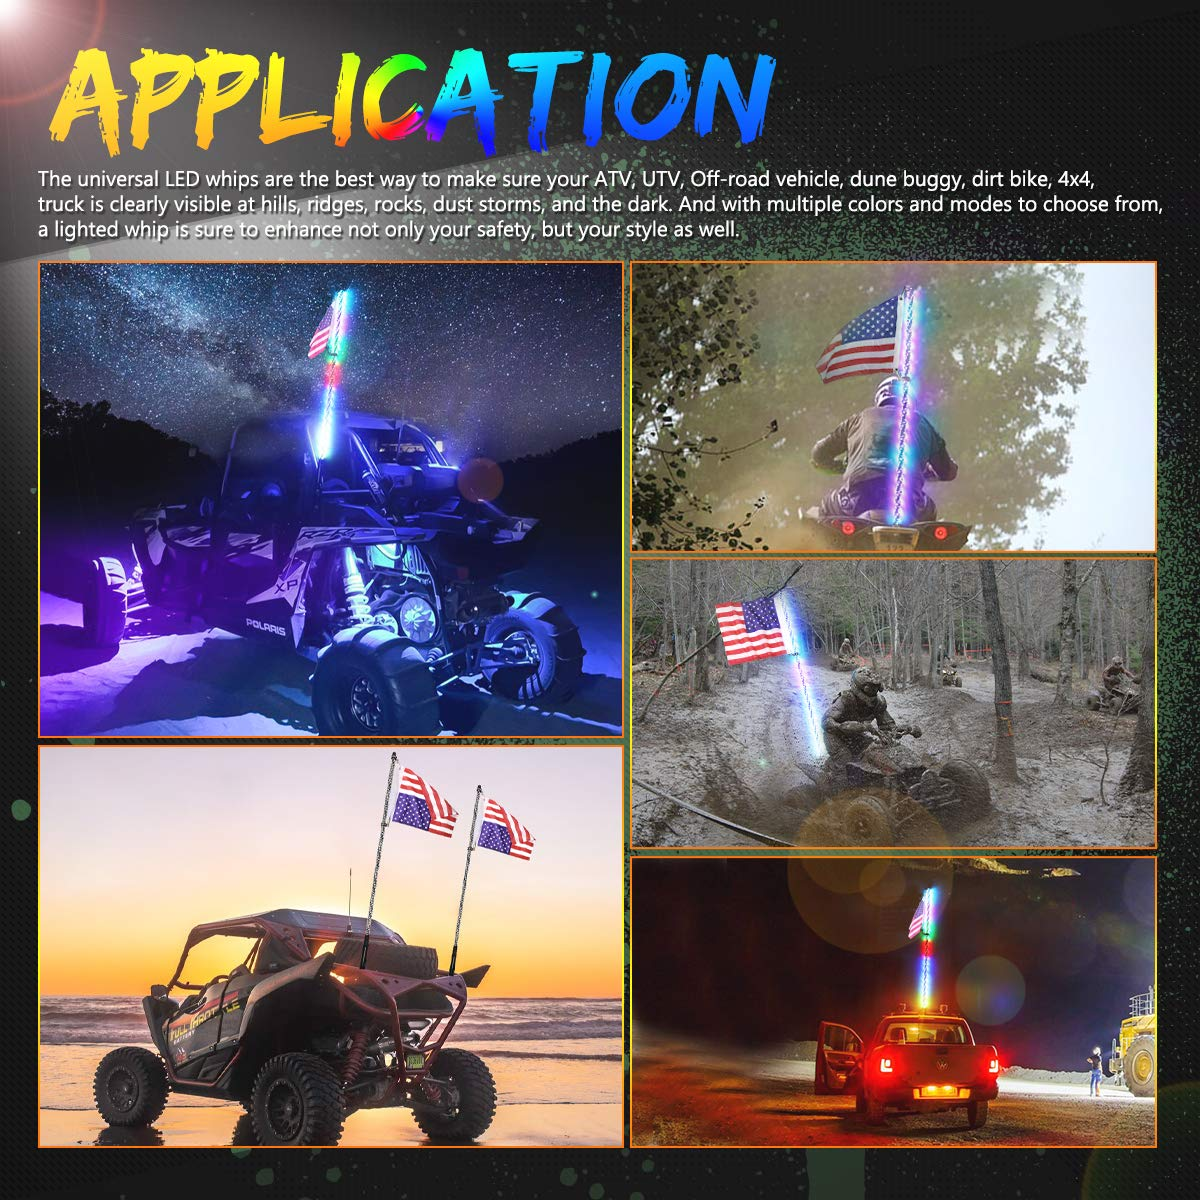 SWATOW INDUSTRIES Lighted Antenna Whip Spiral RGB LED Whip with Remote Control Off Road Chase Light LED Light Whip for UTV ATV RZR Truck Jeep 4 Wheeler Dune Buggy Boat 4ft LED Whip Light with Flag